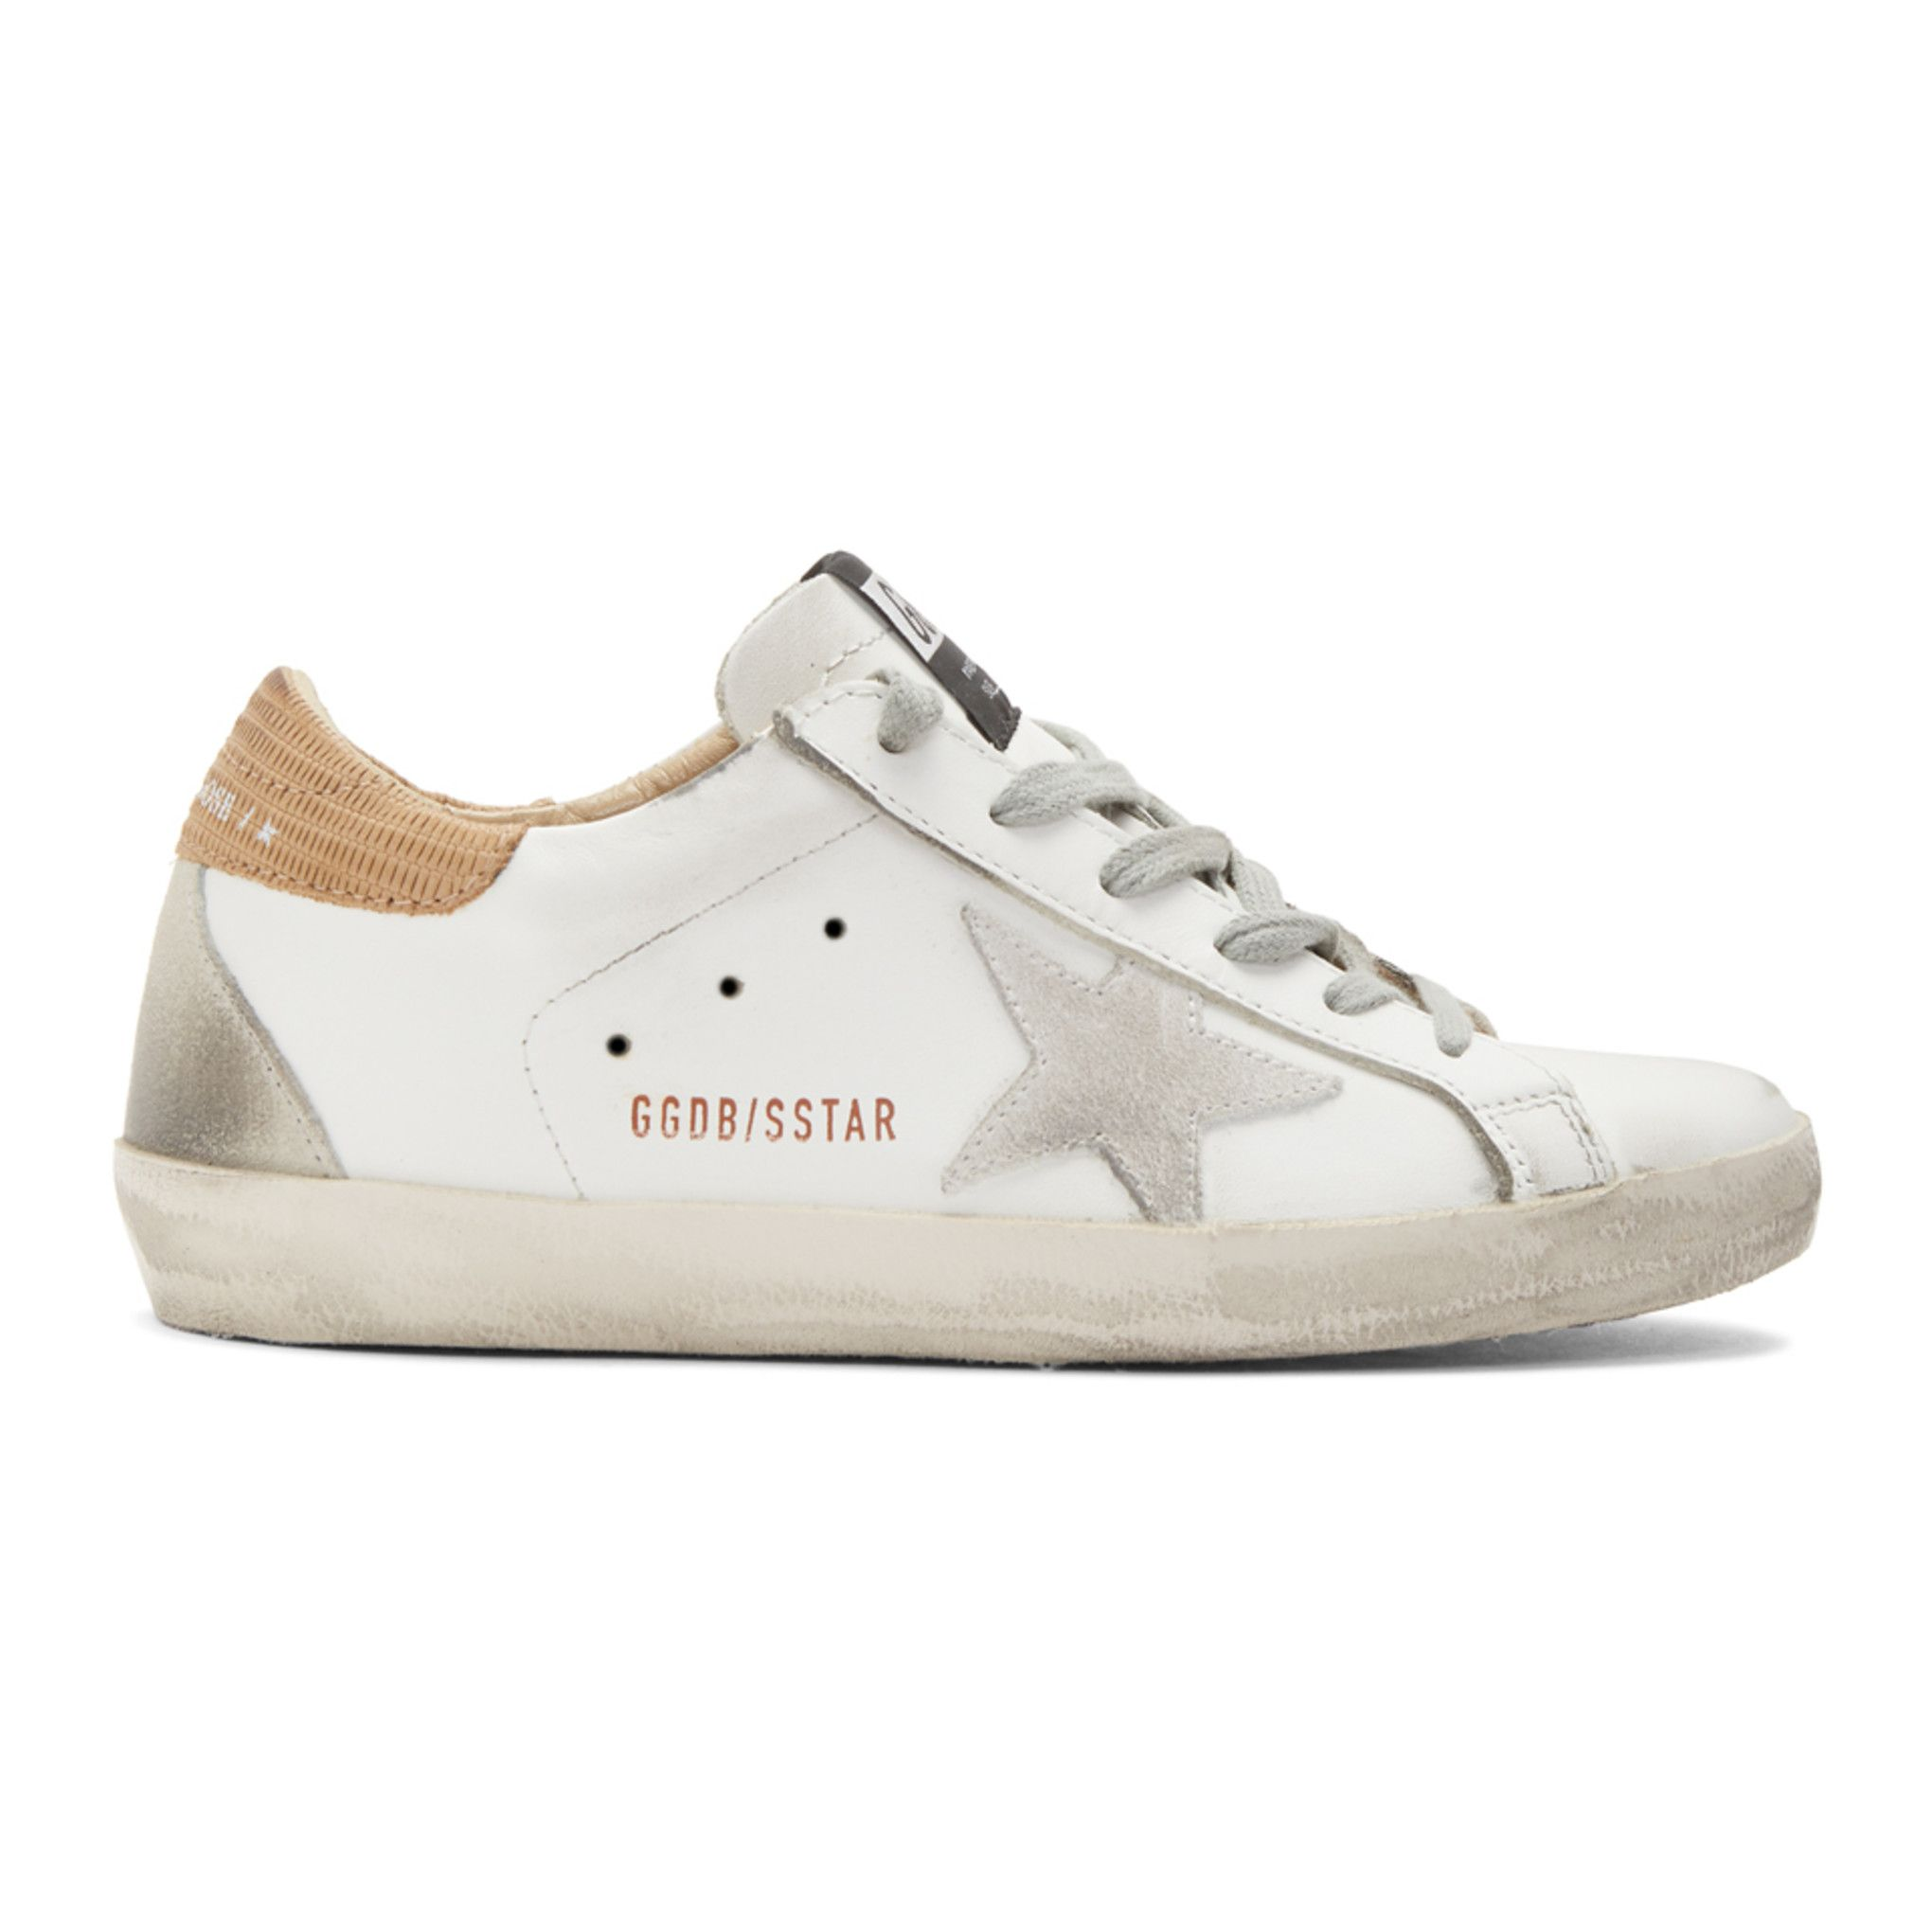 Golden Goose White Lizard Superstar Sneakers SSENSE in